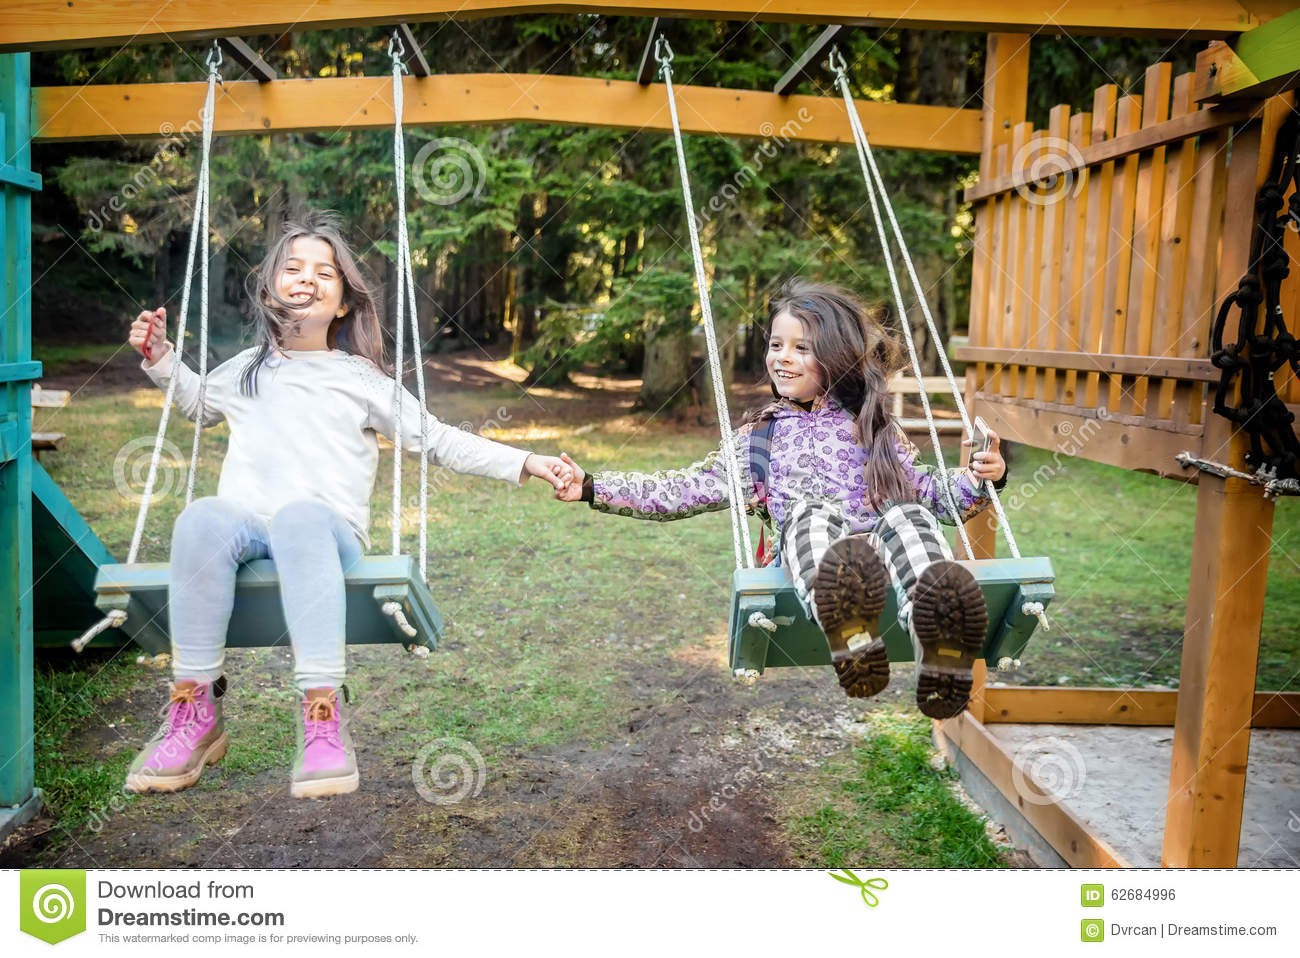 Swinging at the playground rather valuable